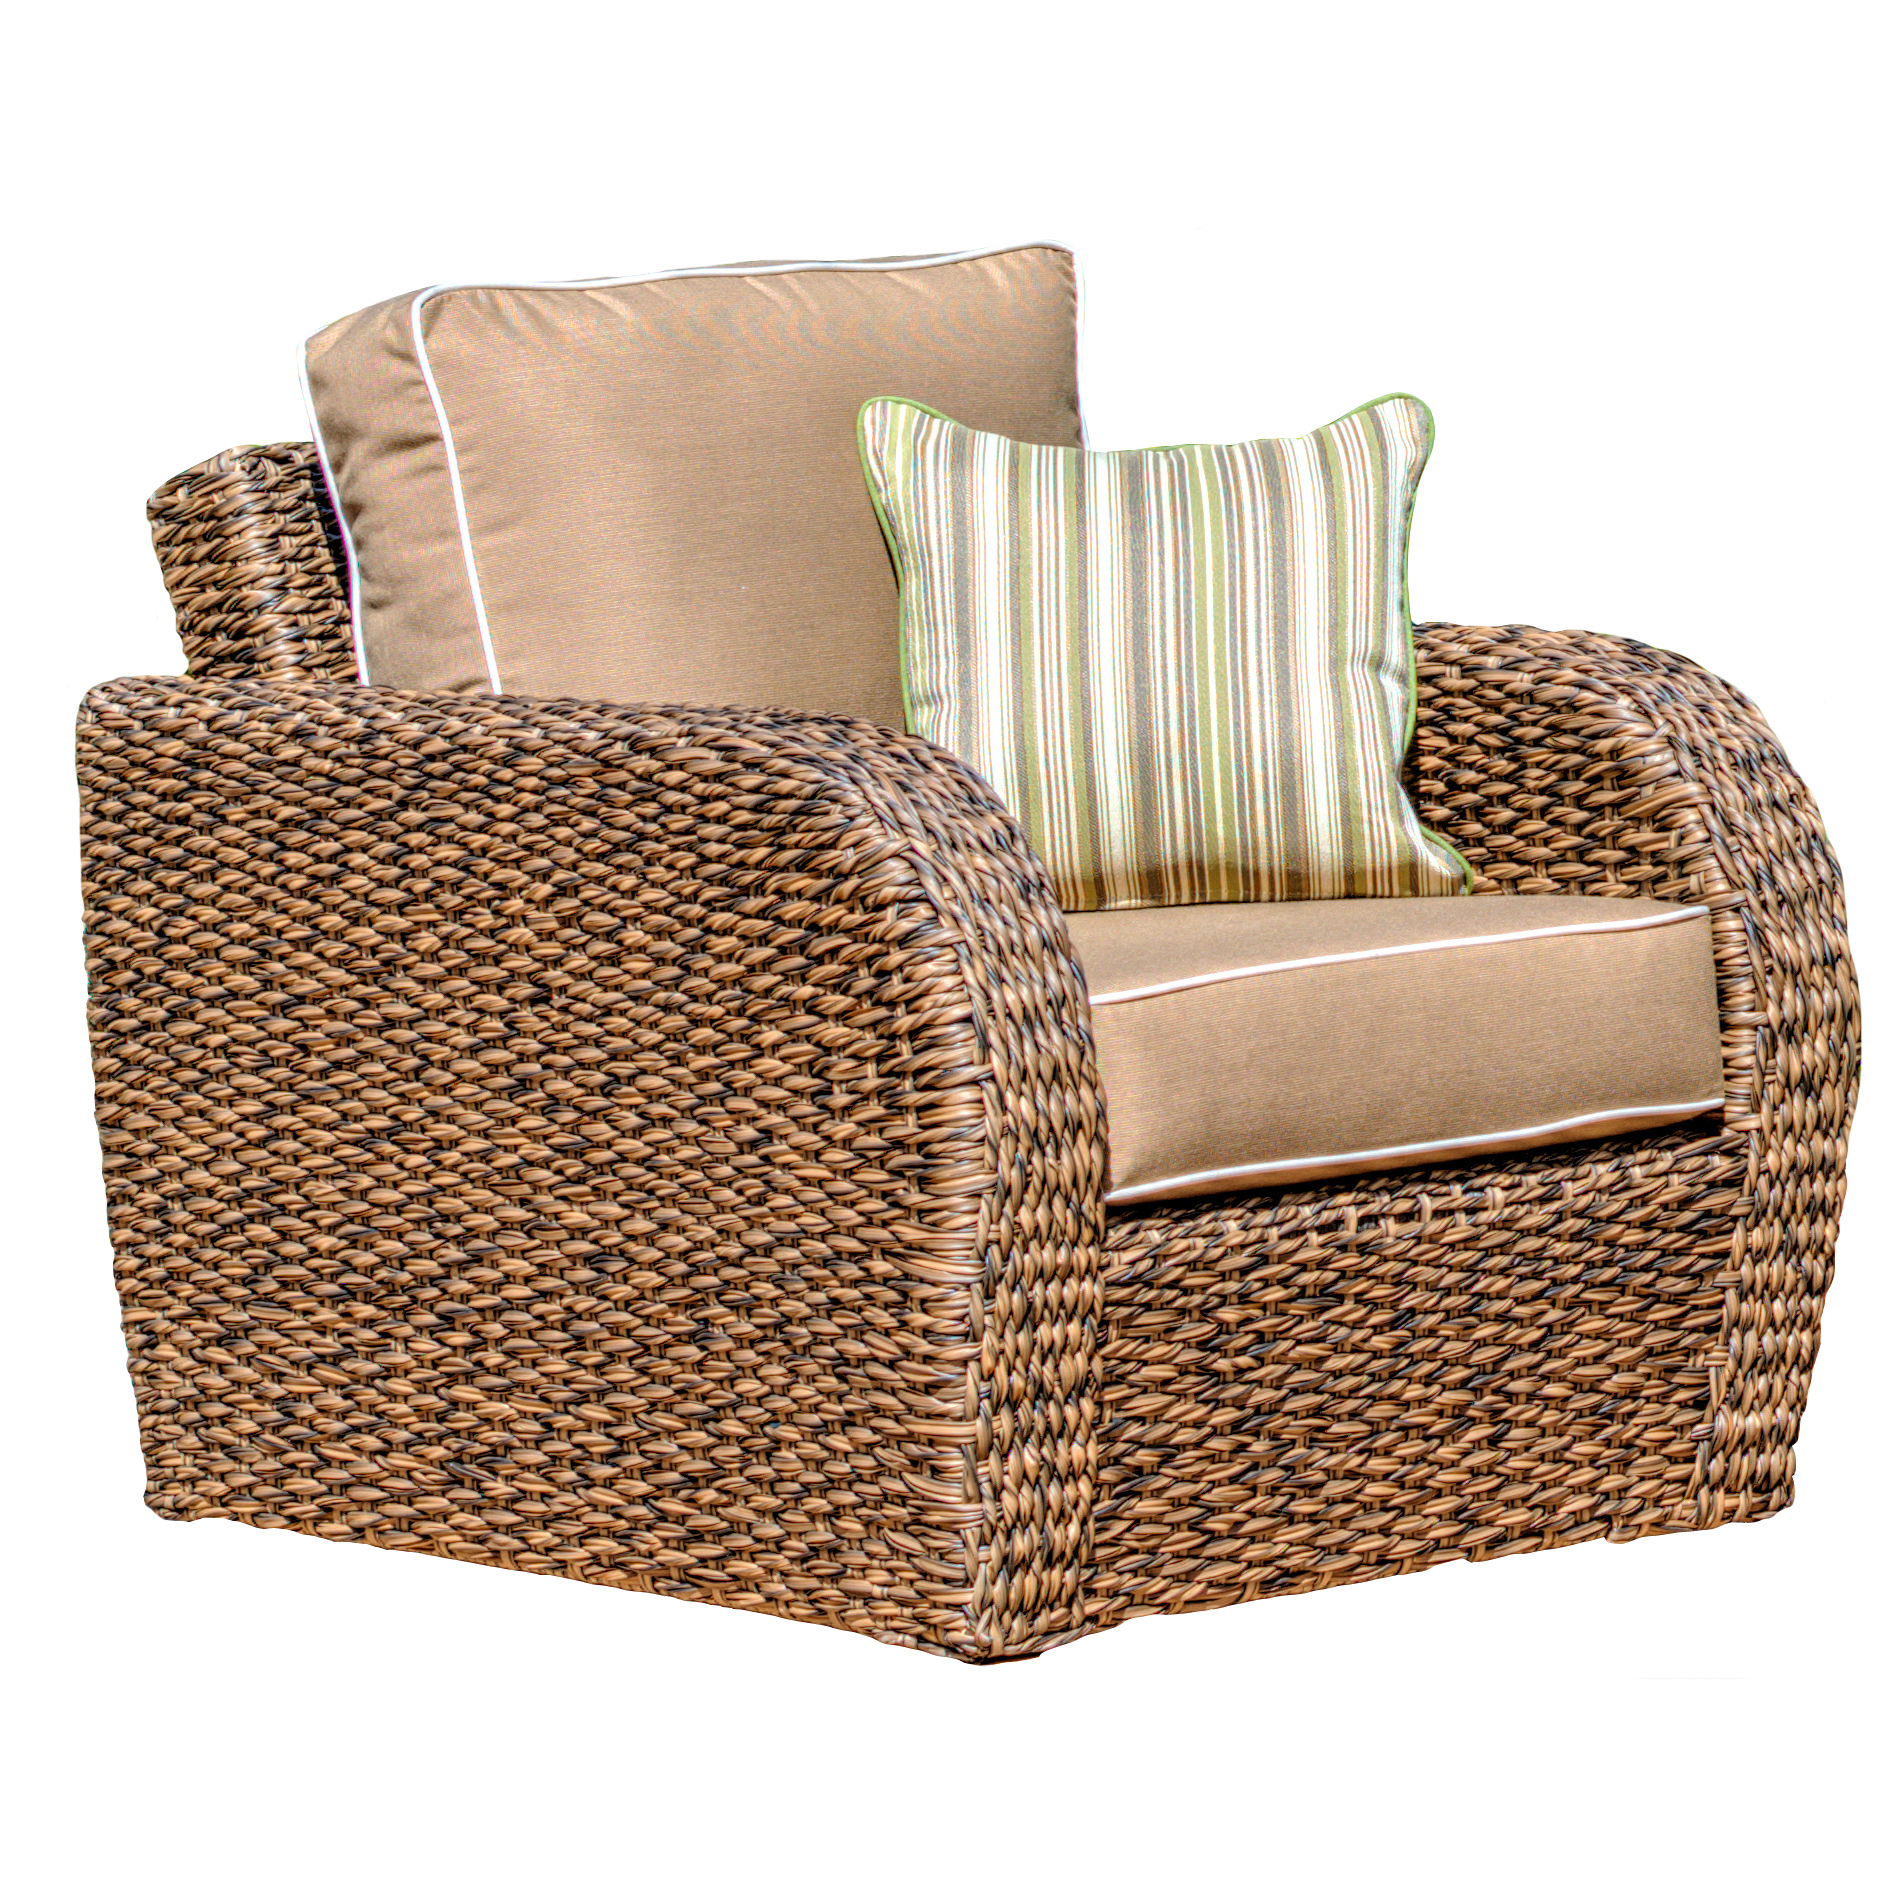 OCEAN VIEW LOUNGE CHAIR RC1640 GRADE A $590.00 GRADE B $610.00 GRADE C $640.00